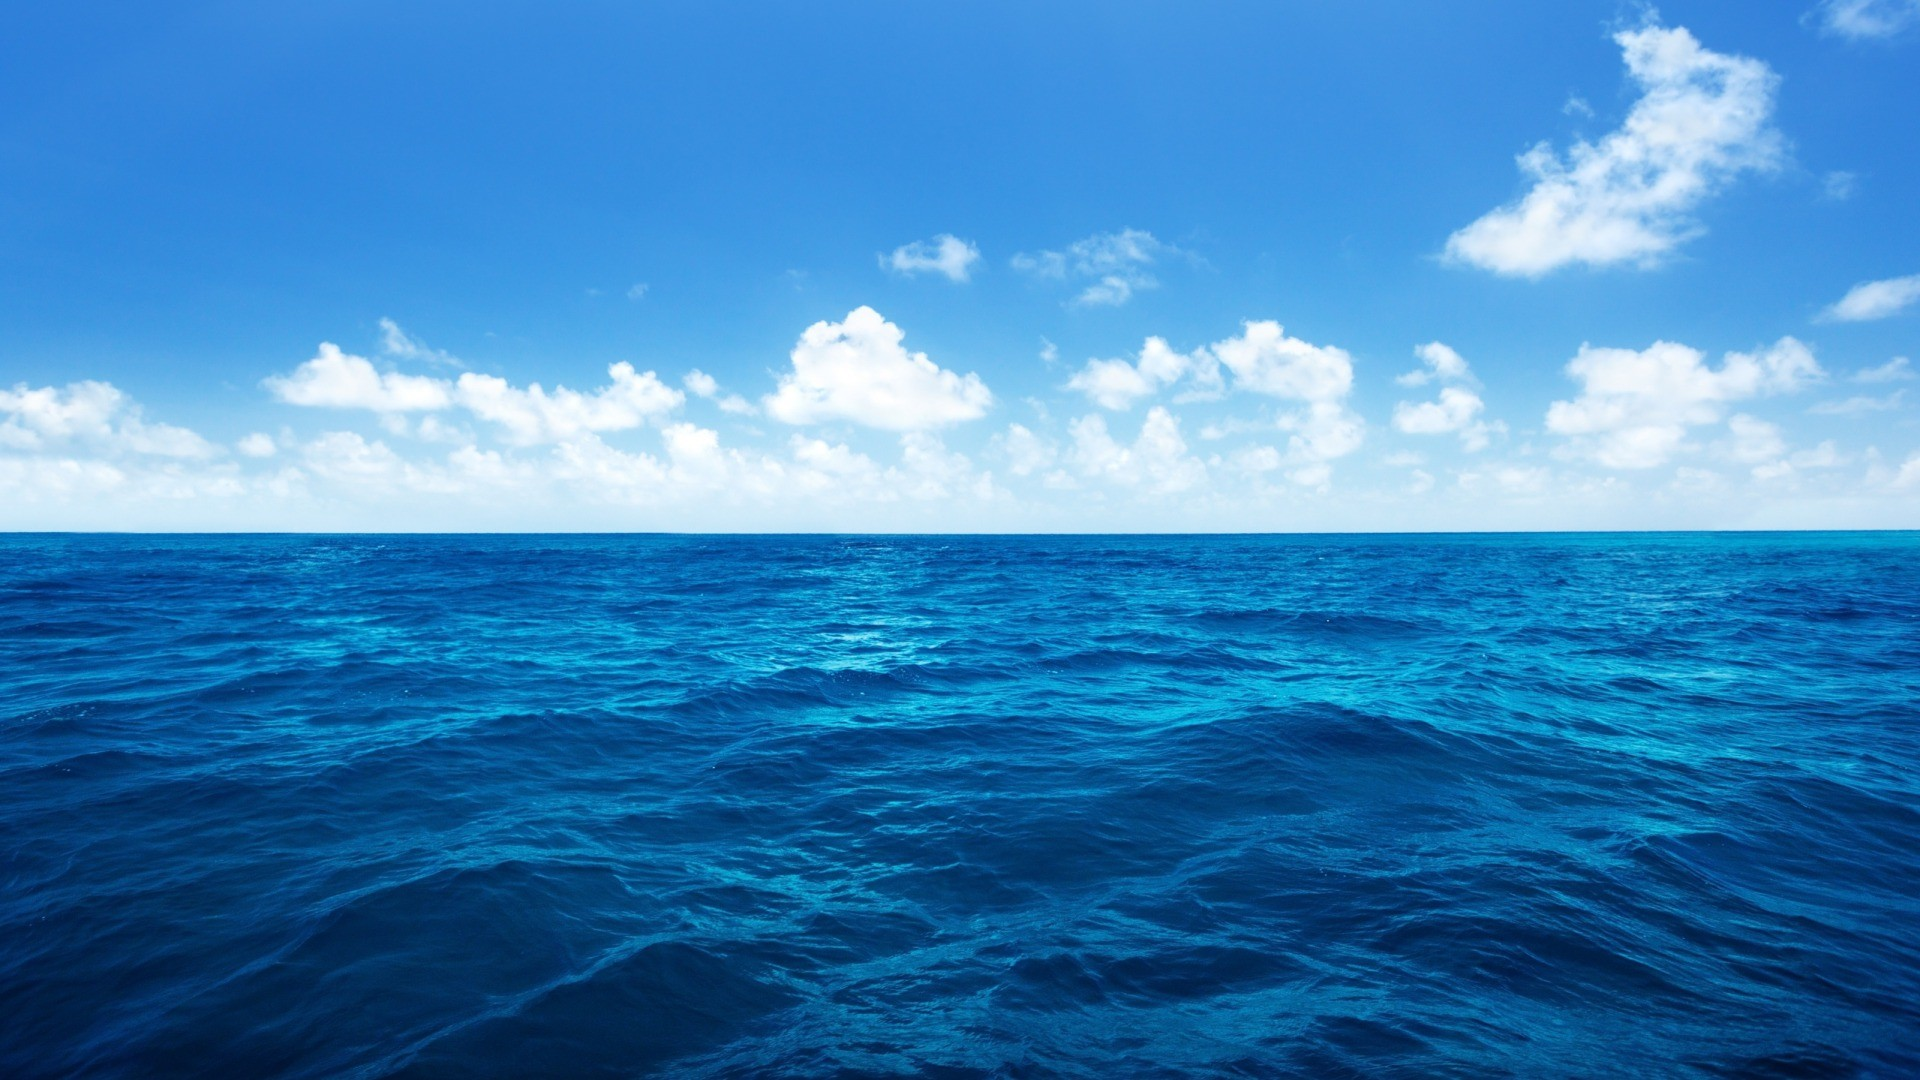 1920x1080 Ocean Wallpapers Photo Pictures.